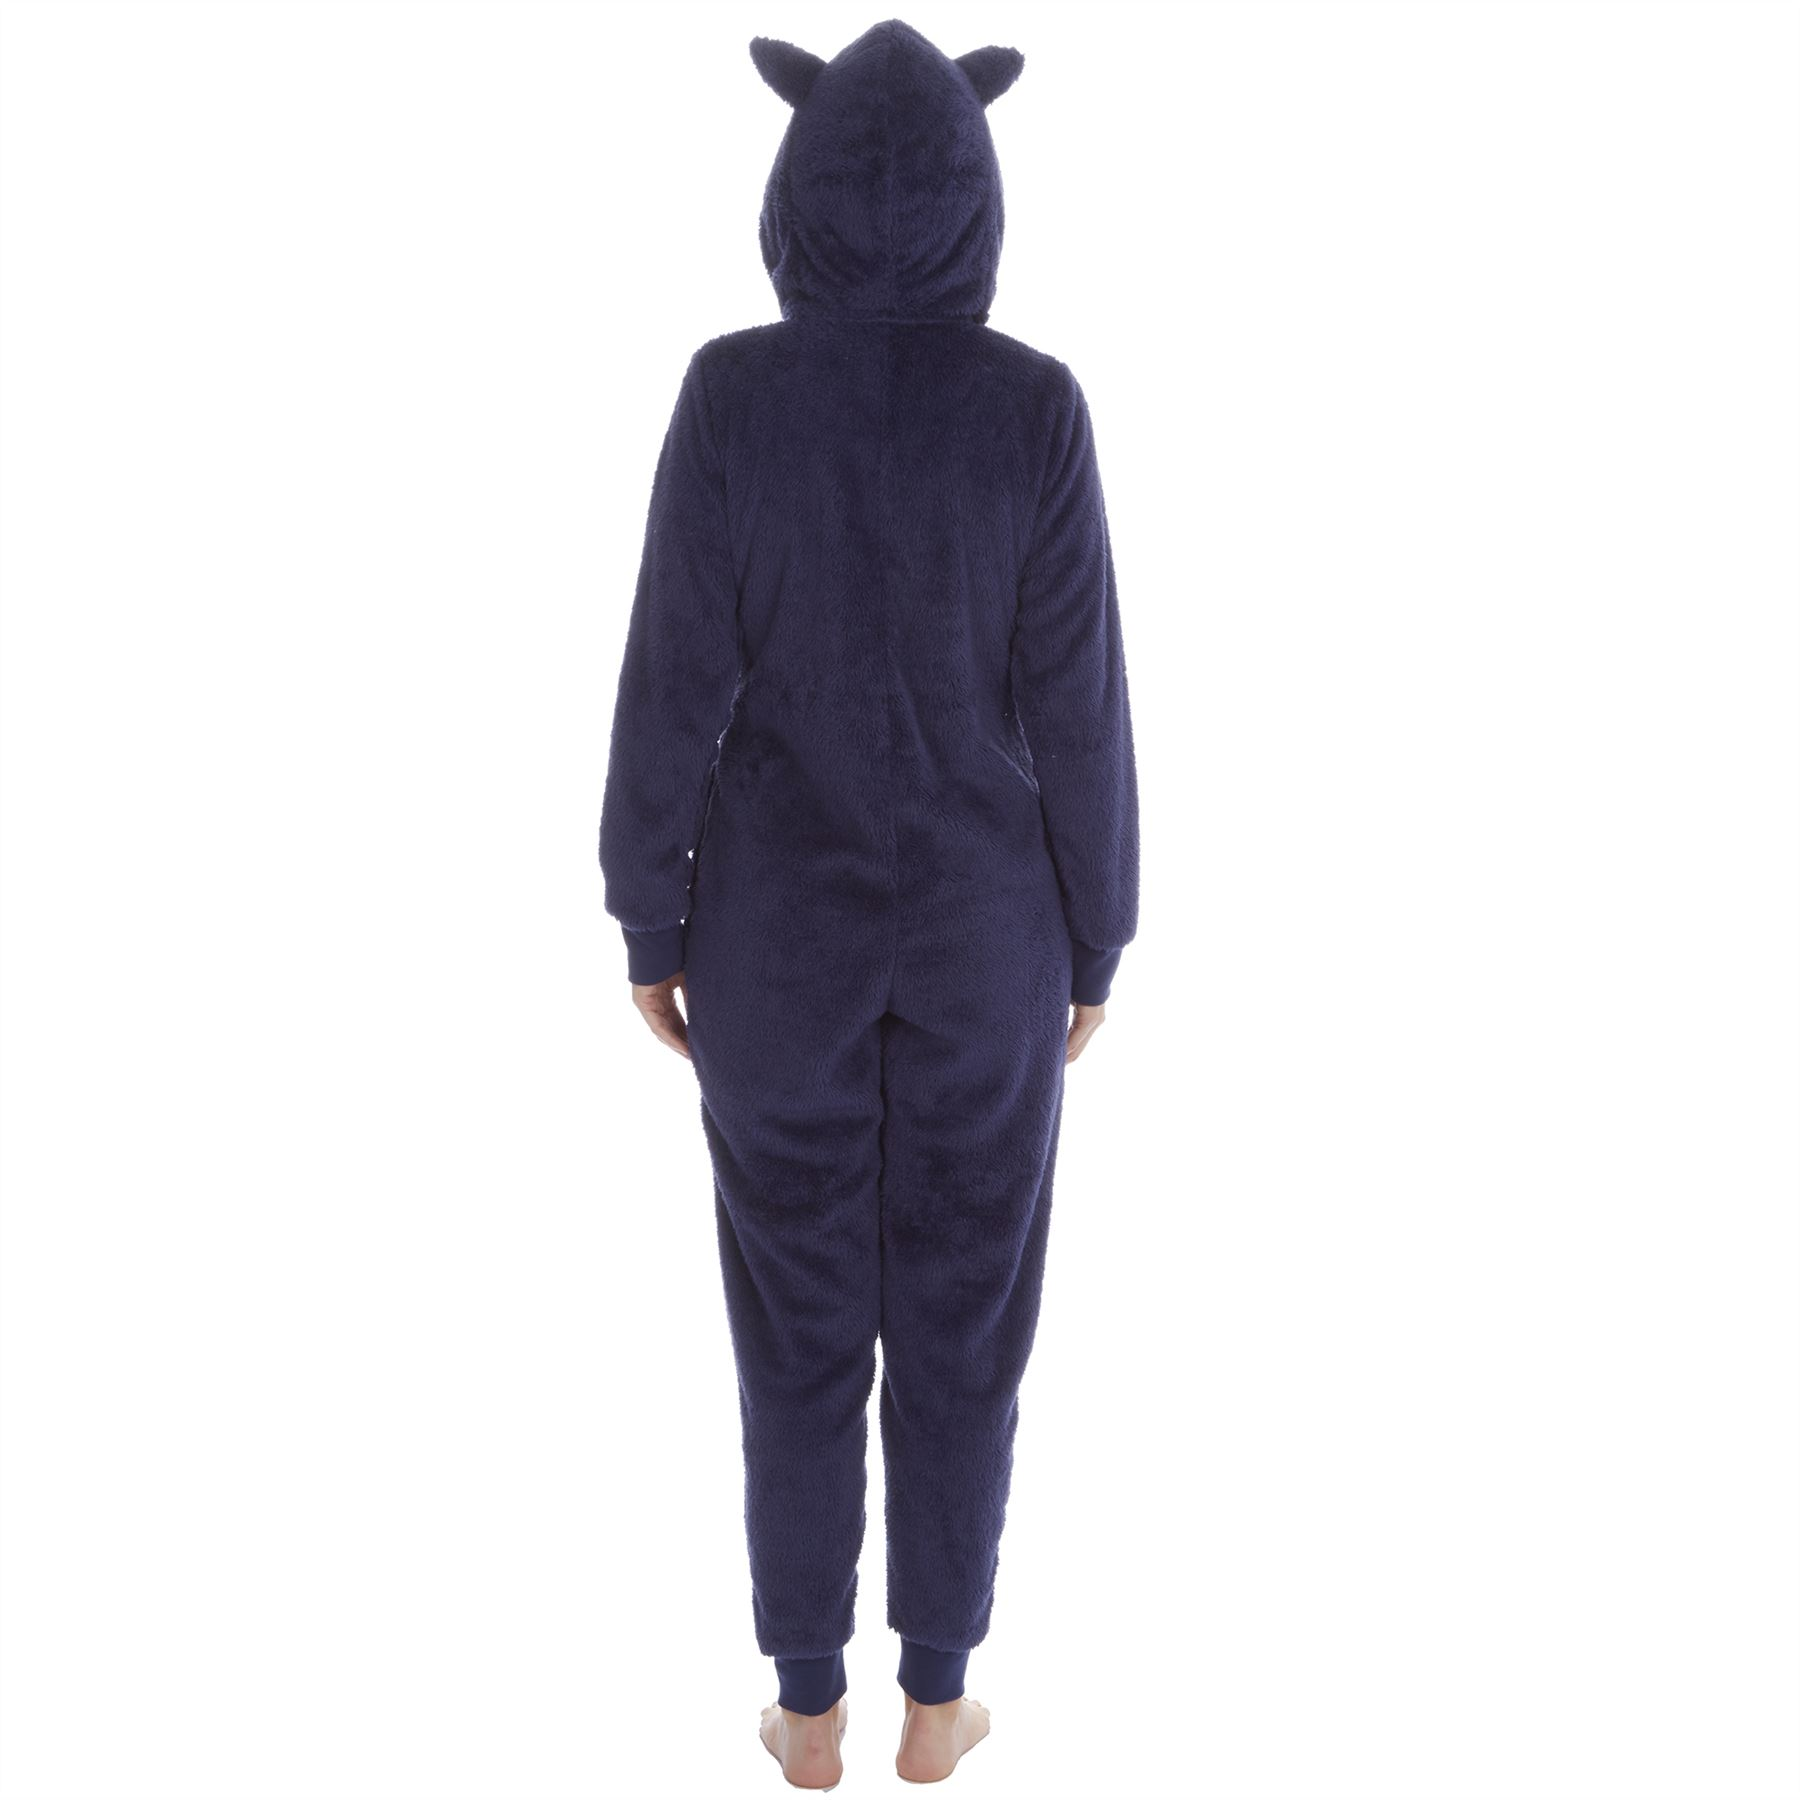 Ladies-Womens-Girls-Fleece-All-In-One-Pyjamas-Outfit-Jumpsuit-Costume-Size-6-18 thumbnail 66